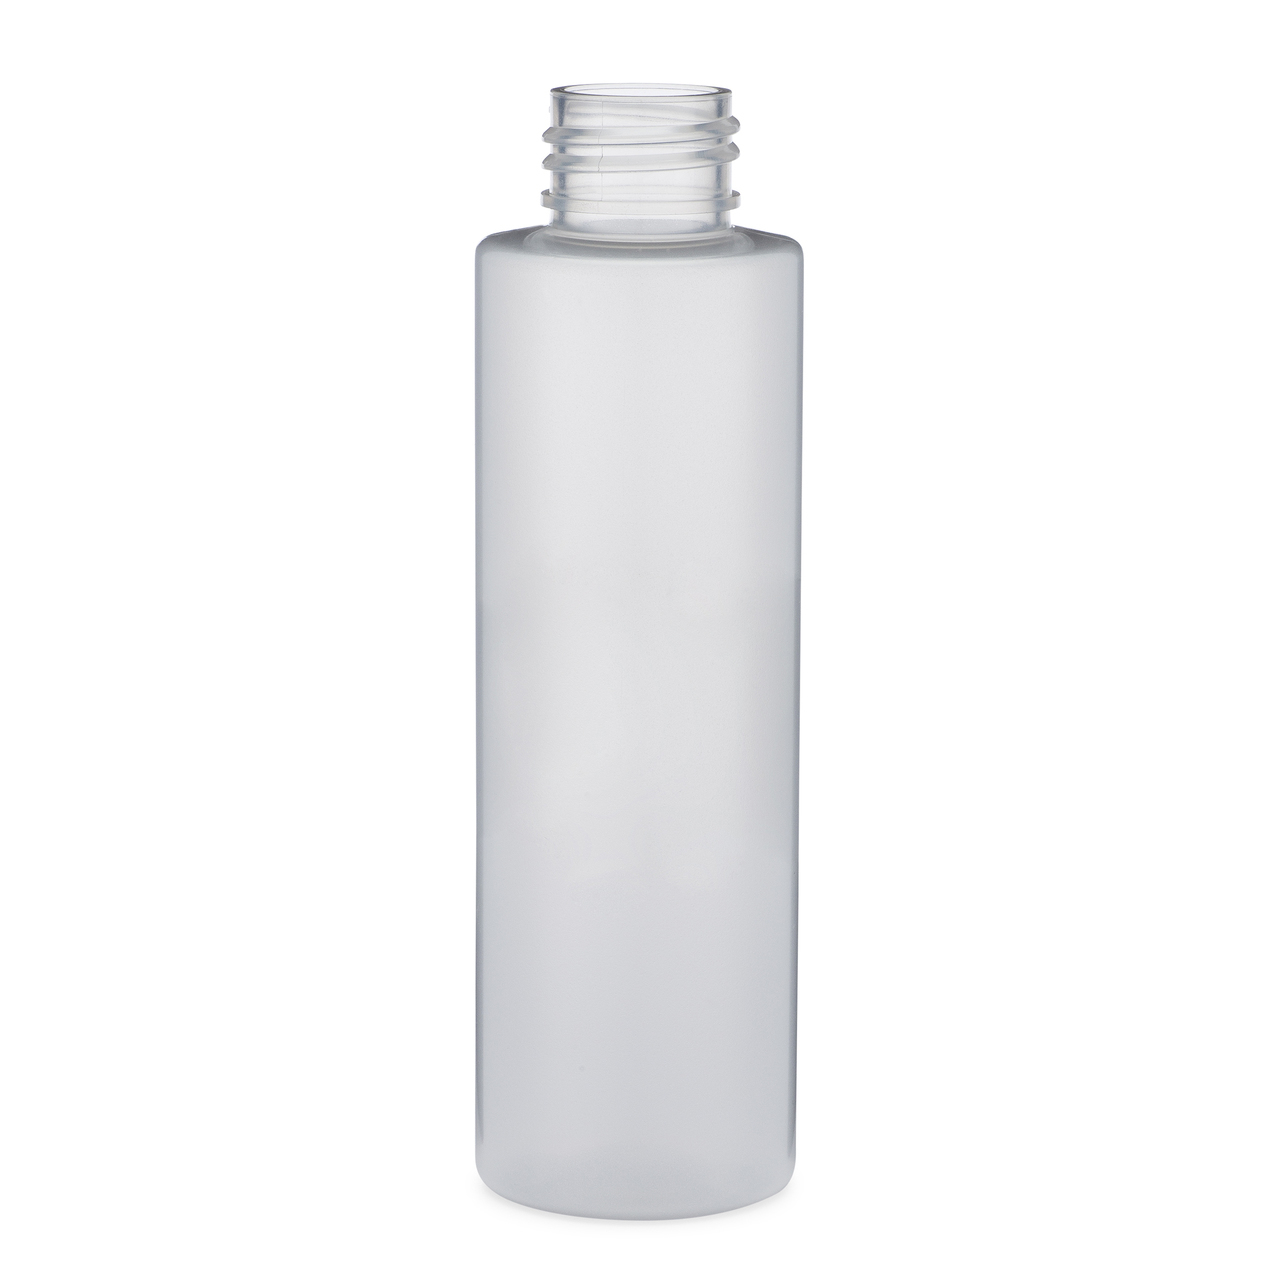 23059d81bff1 4 oz Clear Frosted PET Plastic Cylinder Bottles (Cap Not Included) -  3570B03-B